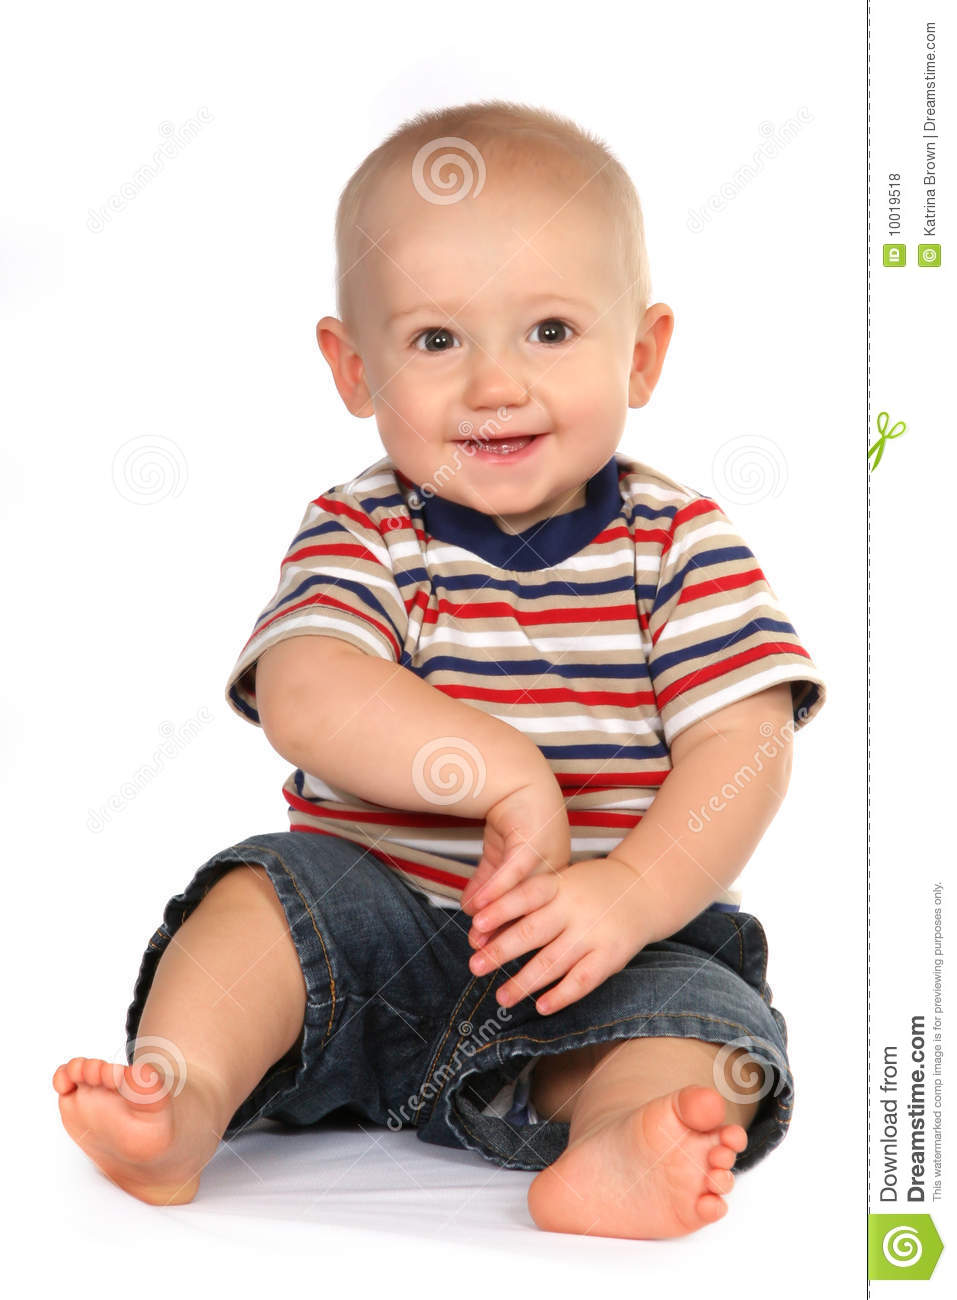 Cute Baby Boy Toddler Sitting And Holding Hand Royalty Free Stock